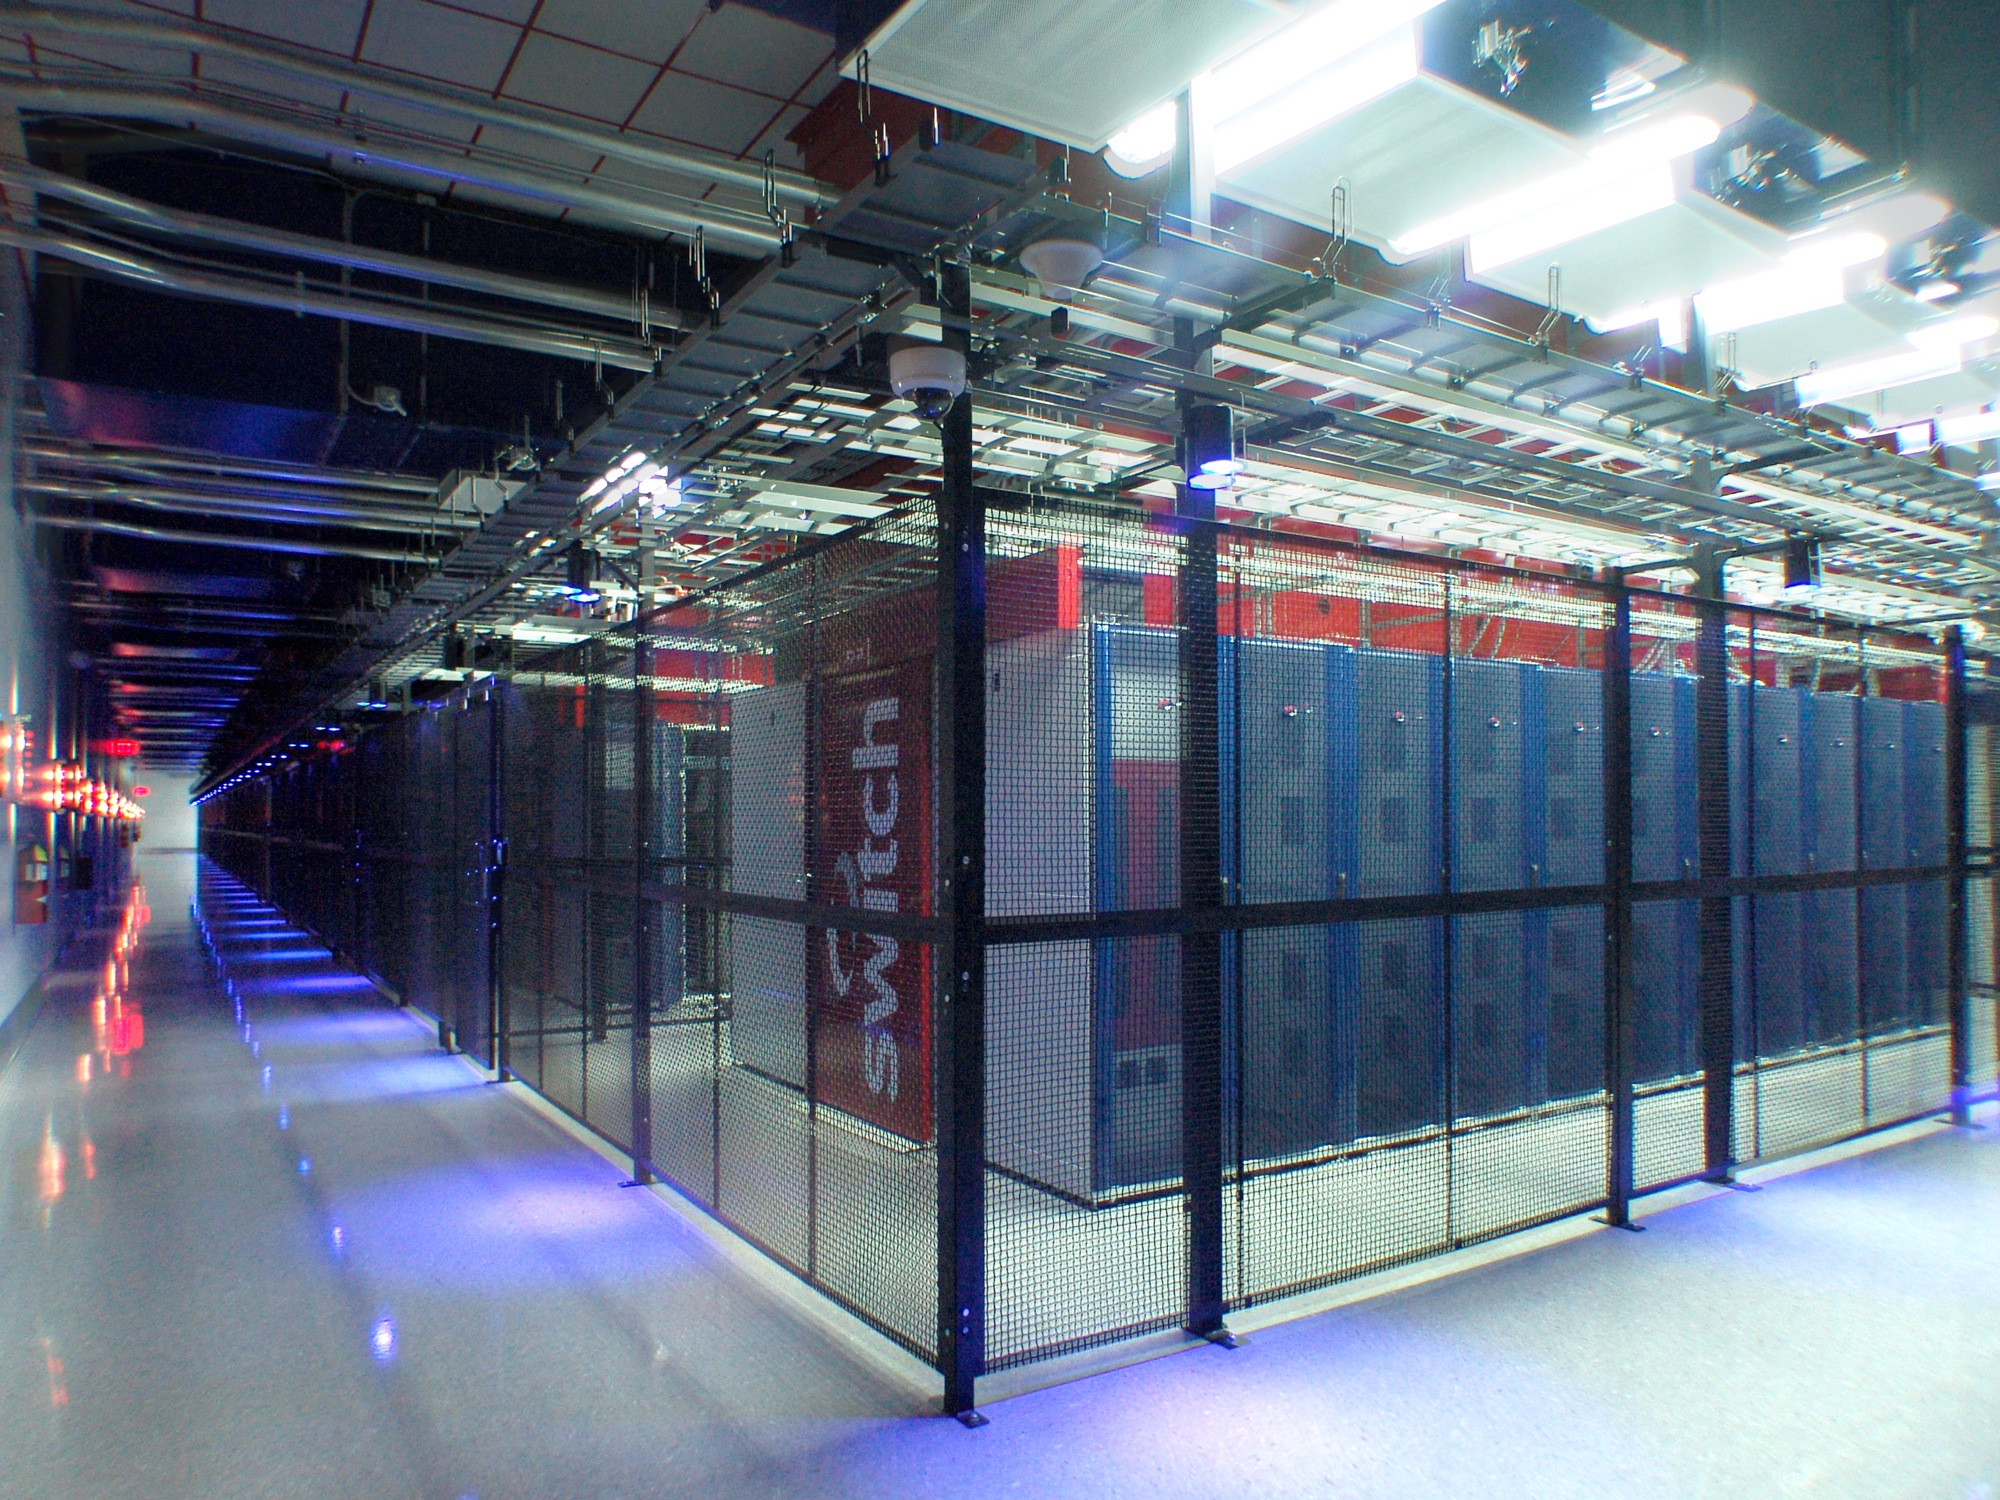 Switch's SuperNAP data center in Las Vegas